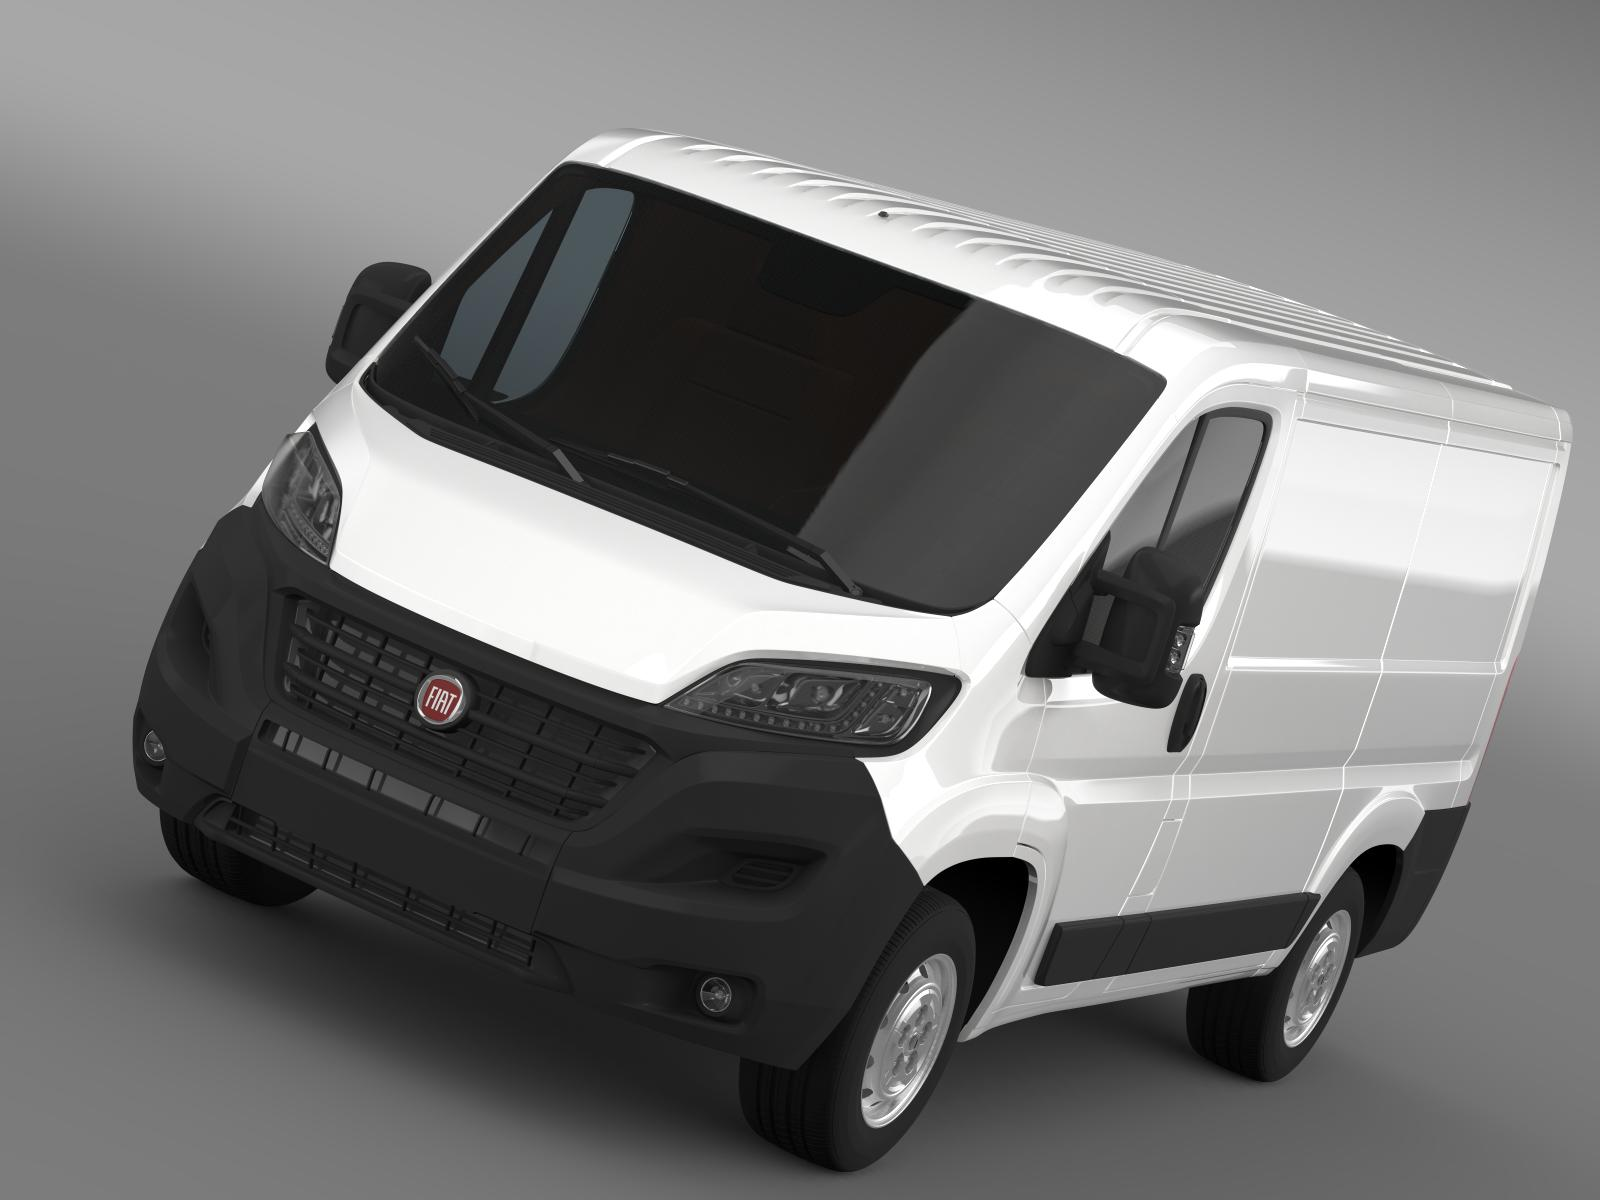 fiat ducato van l1h1 2015 3d model flatpyramid. Black Bedroom Furniture Sets. Home Design Ideas